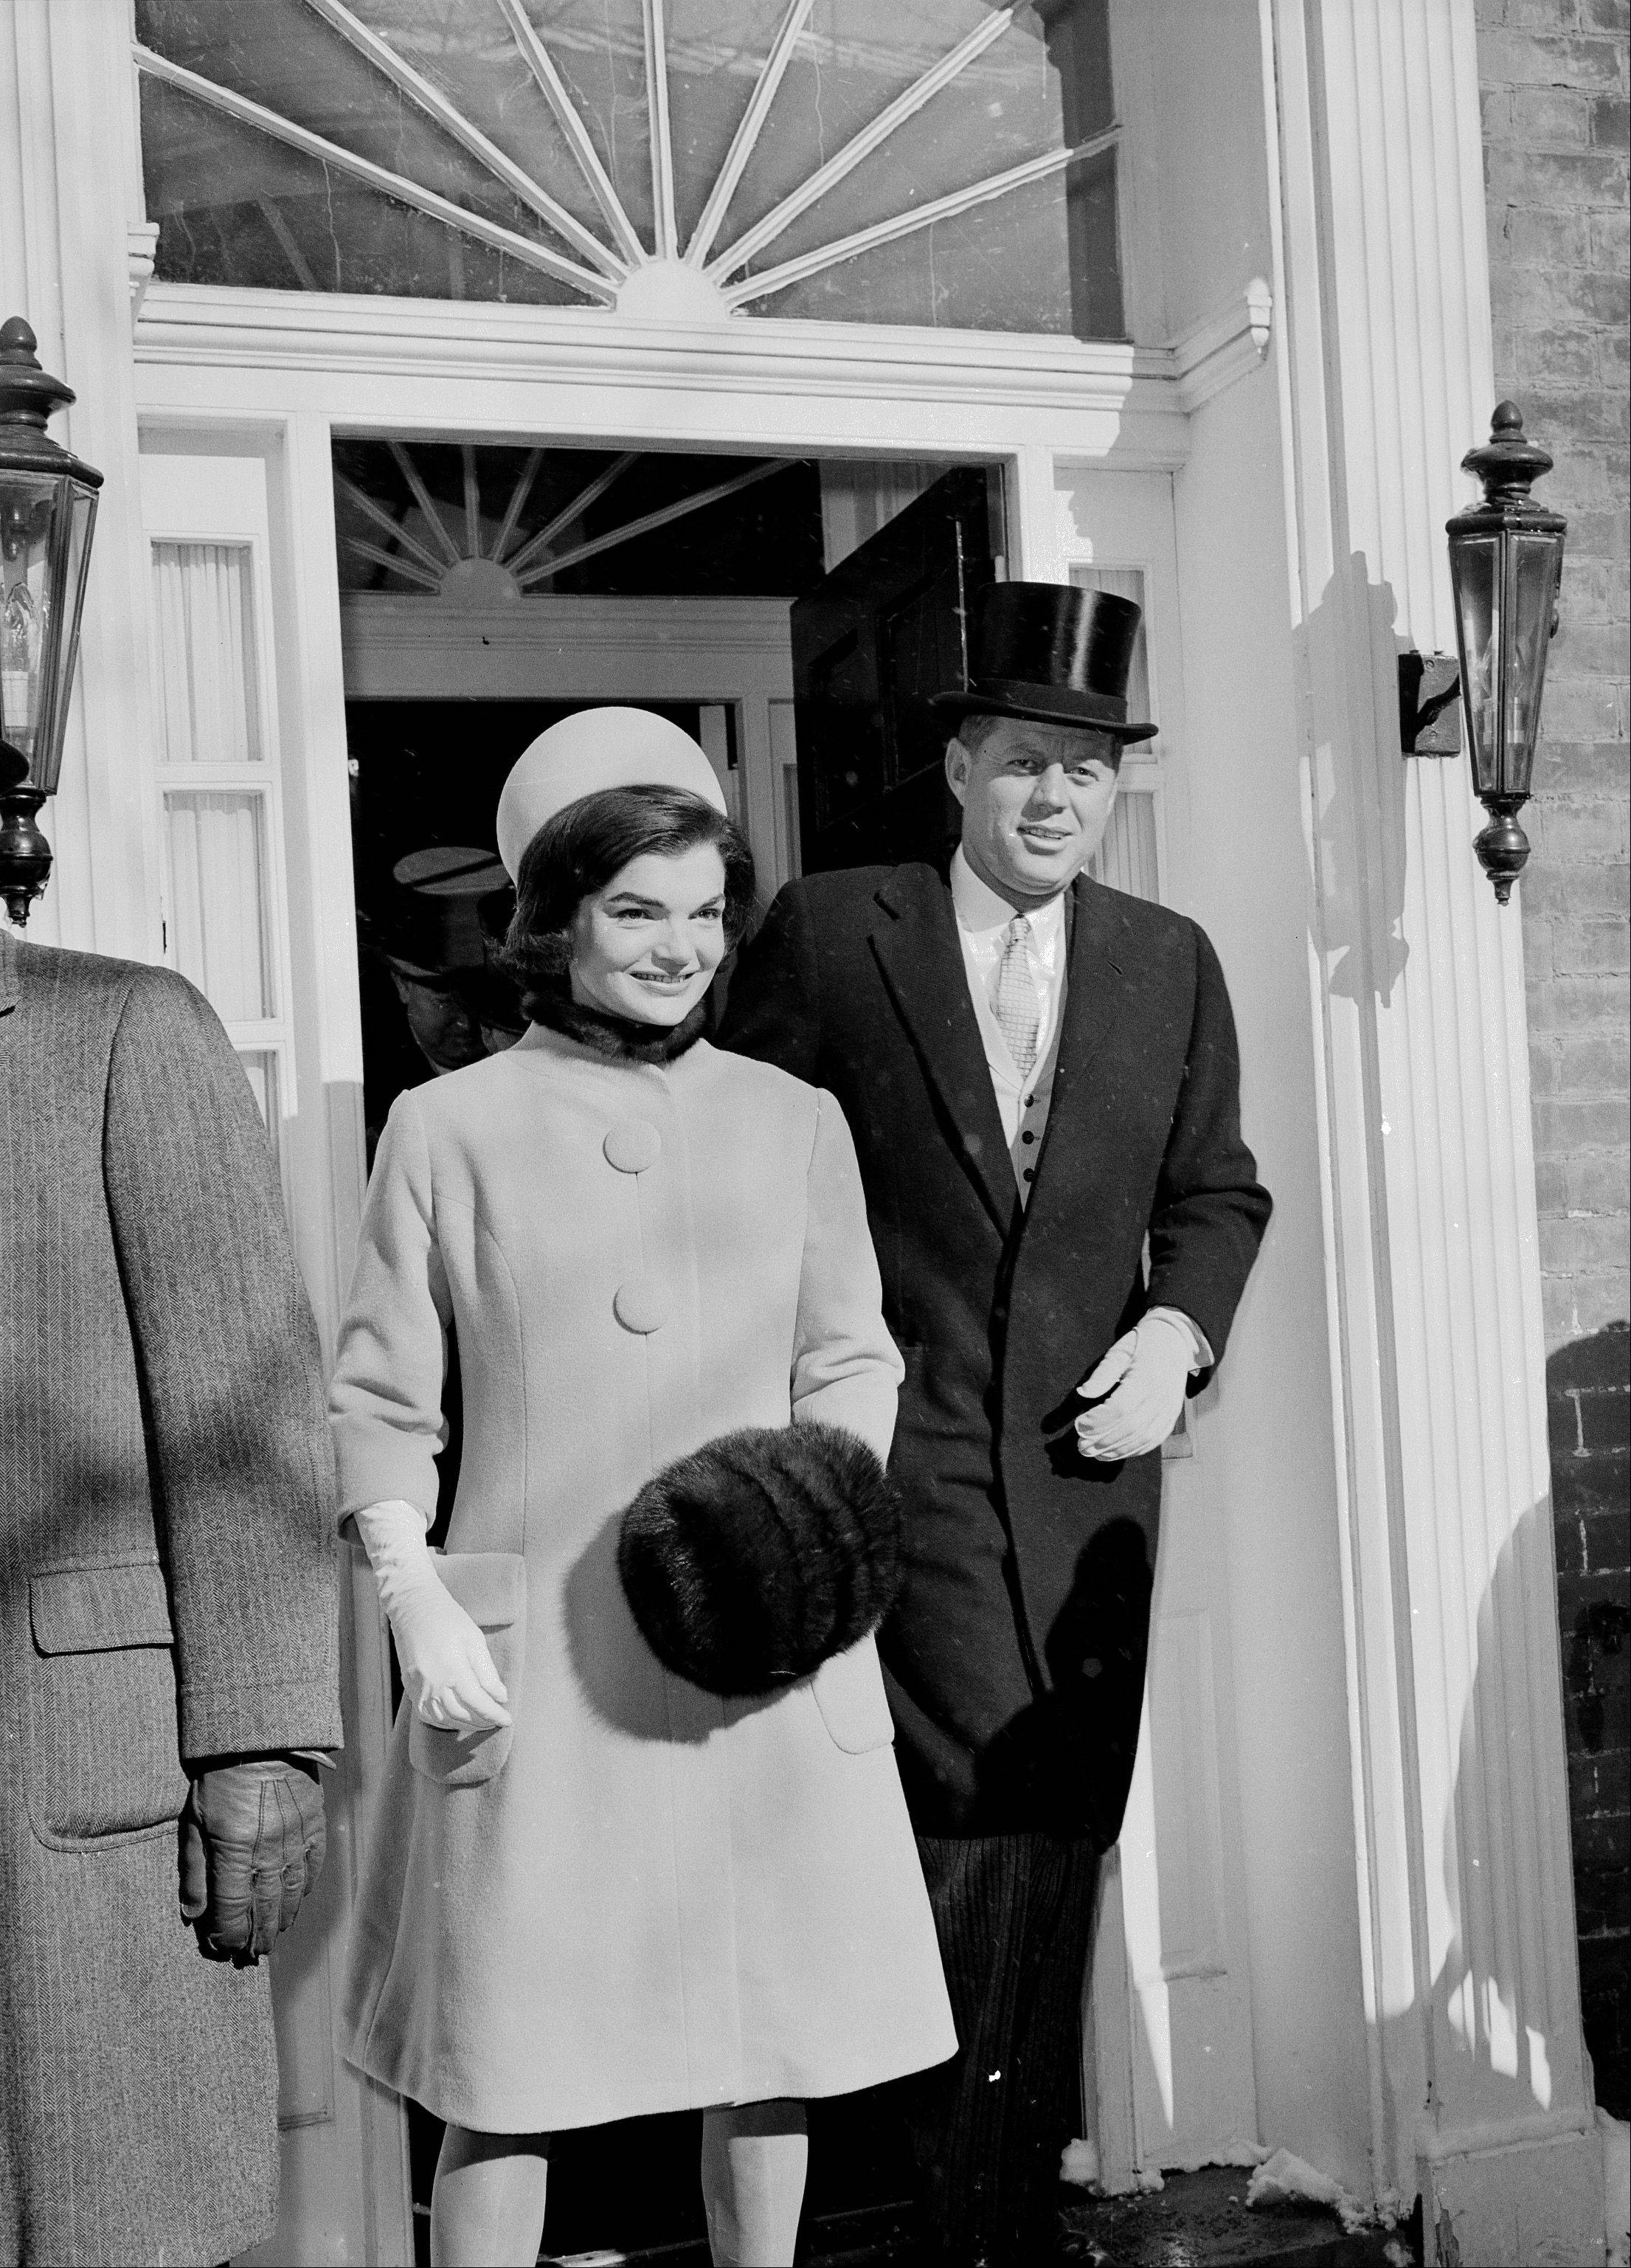 U.S. President-elect John F. Kennedy, wearing his high hat, and his wife, Jacqueline Kennedy, are shown as they leave their Georgetown resident for the inauguration day ceremonies in Washington, D.C., Jan. 20, 1961.